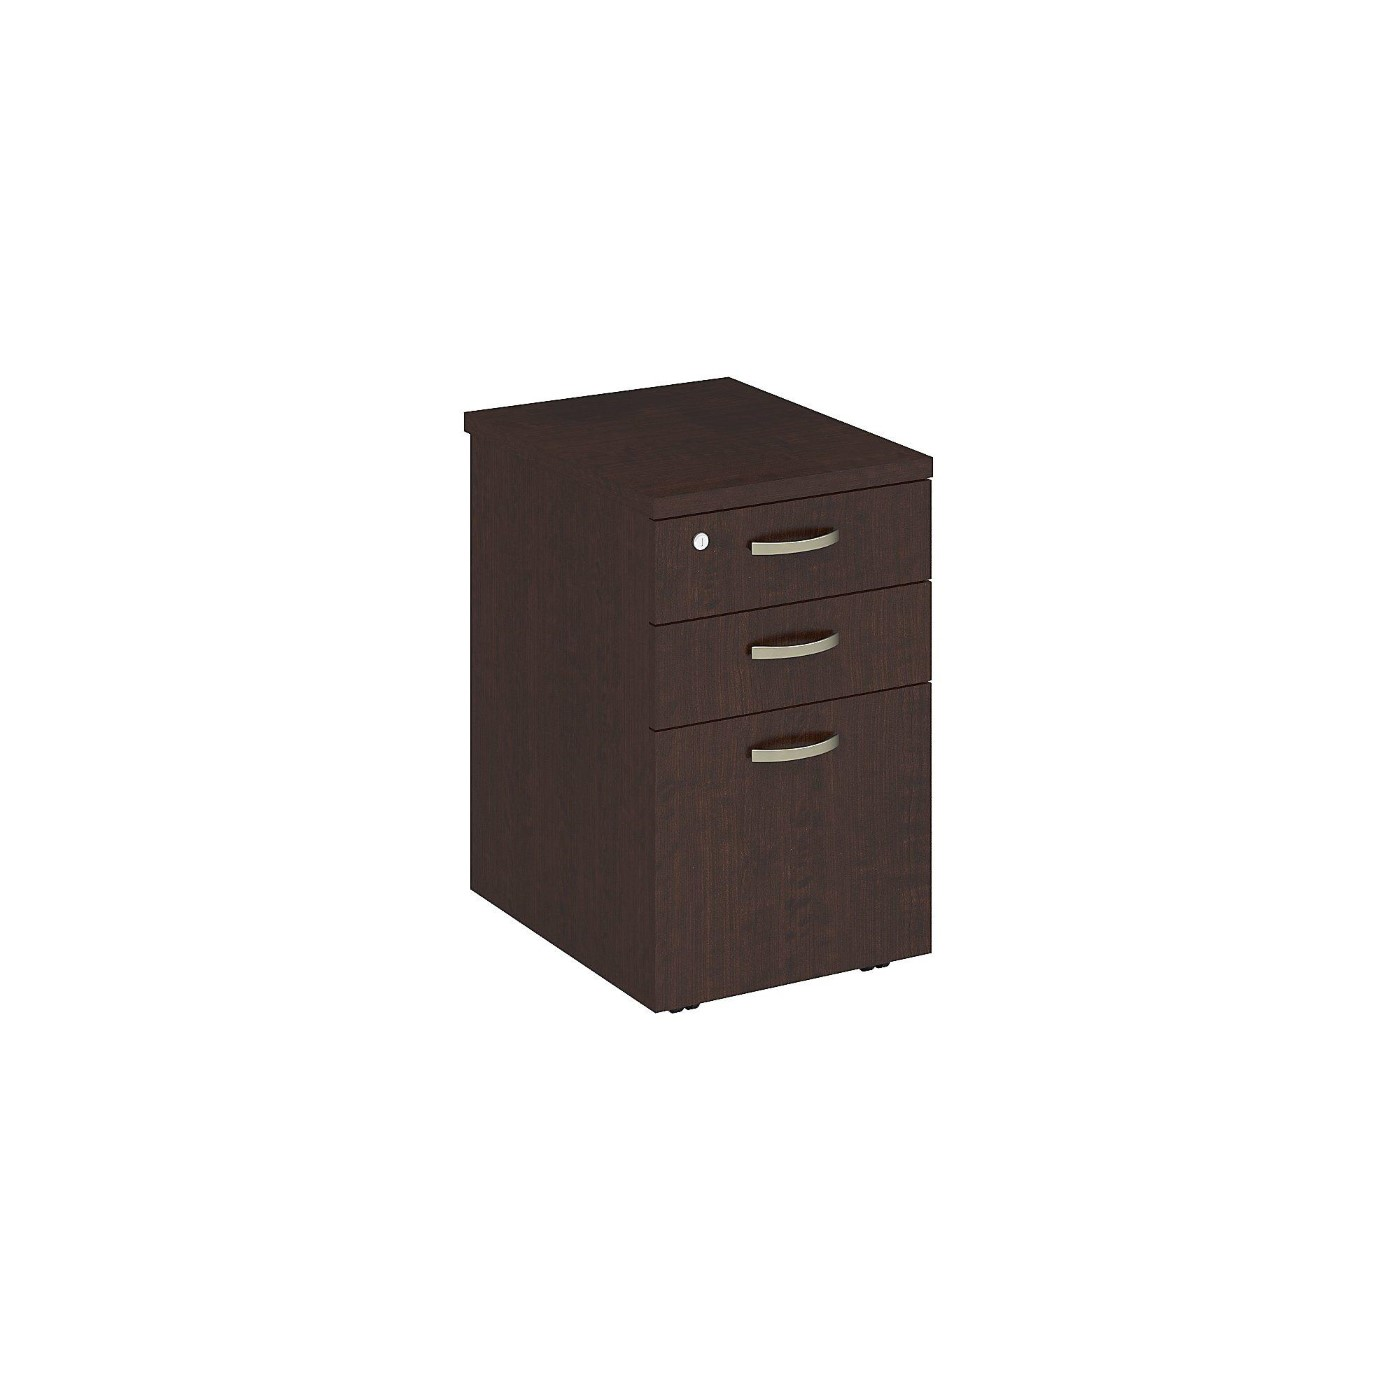 <font color=#c60><b>BUSH BUSINESS FURNITURE EASY OFFICE 16W MOBILE FILE CABINET. FREE SHIPPING</font></b>